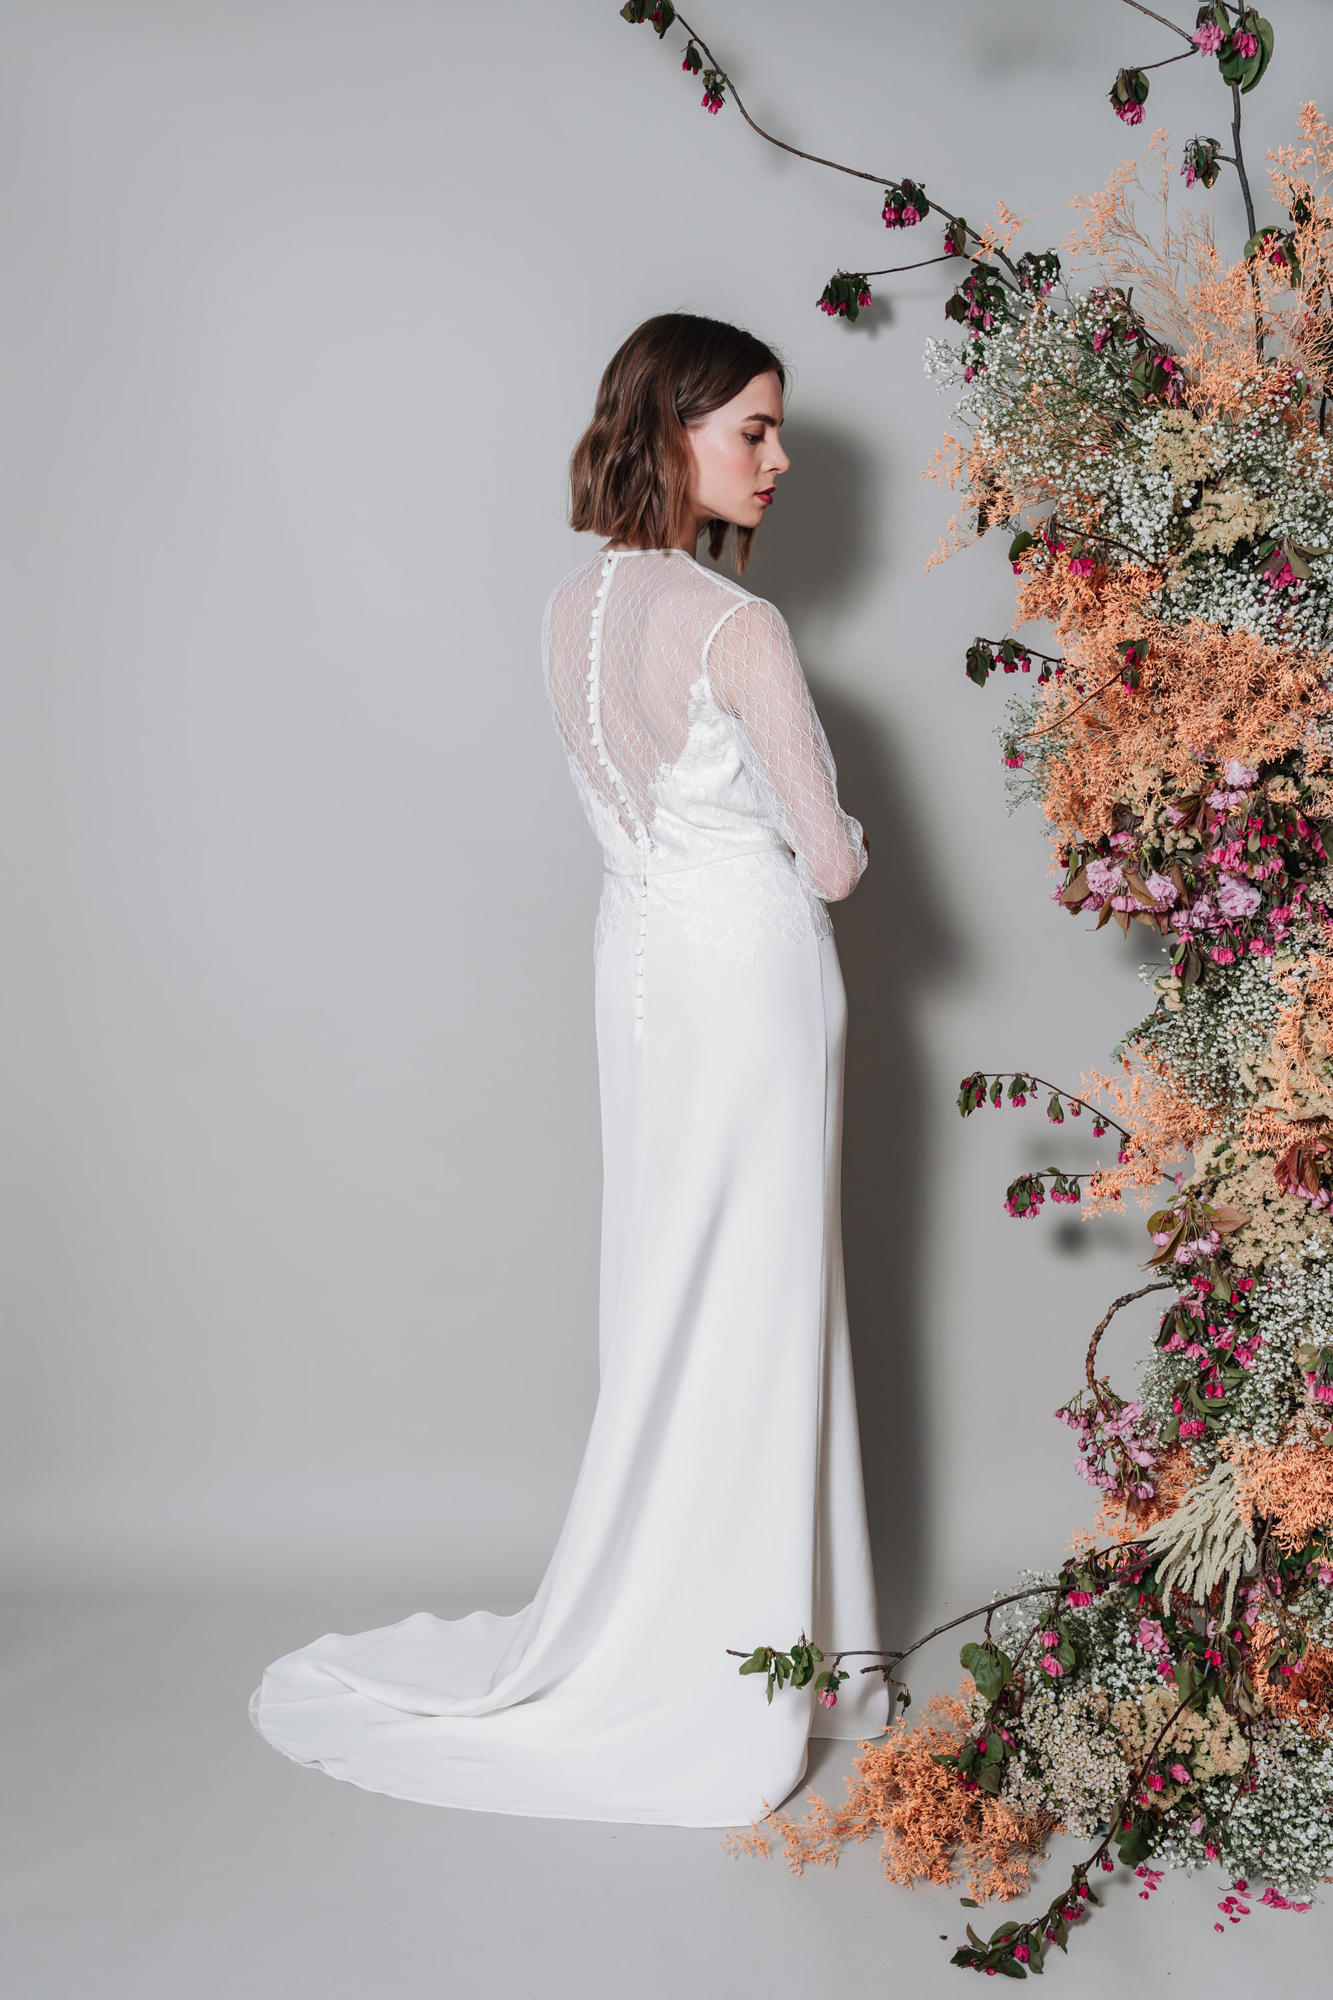 Kate-Beaumont-Sheffield-Geranium-Applique-Lace-Silk-Modern-Minimal-Long-Sleeved-Wedding-Gown-11.jpg